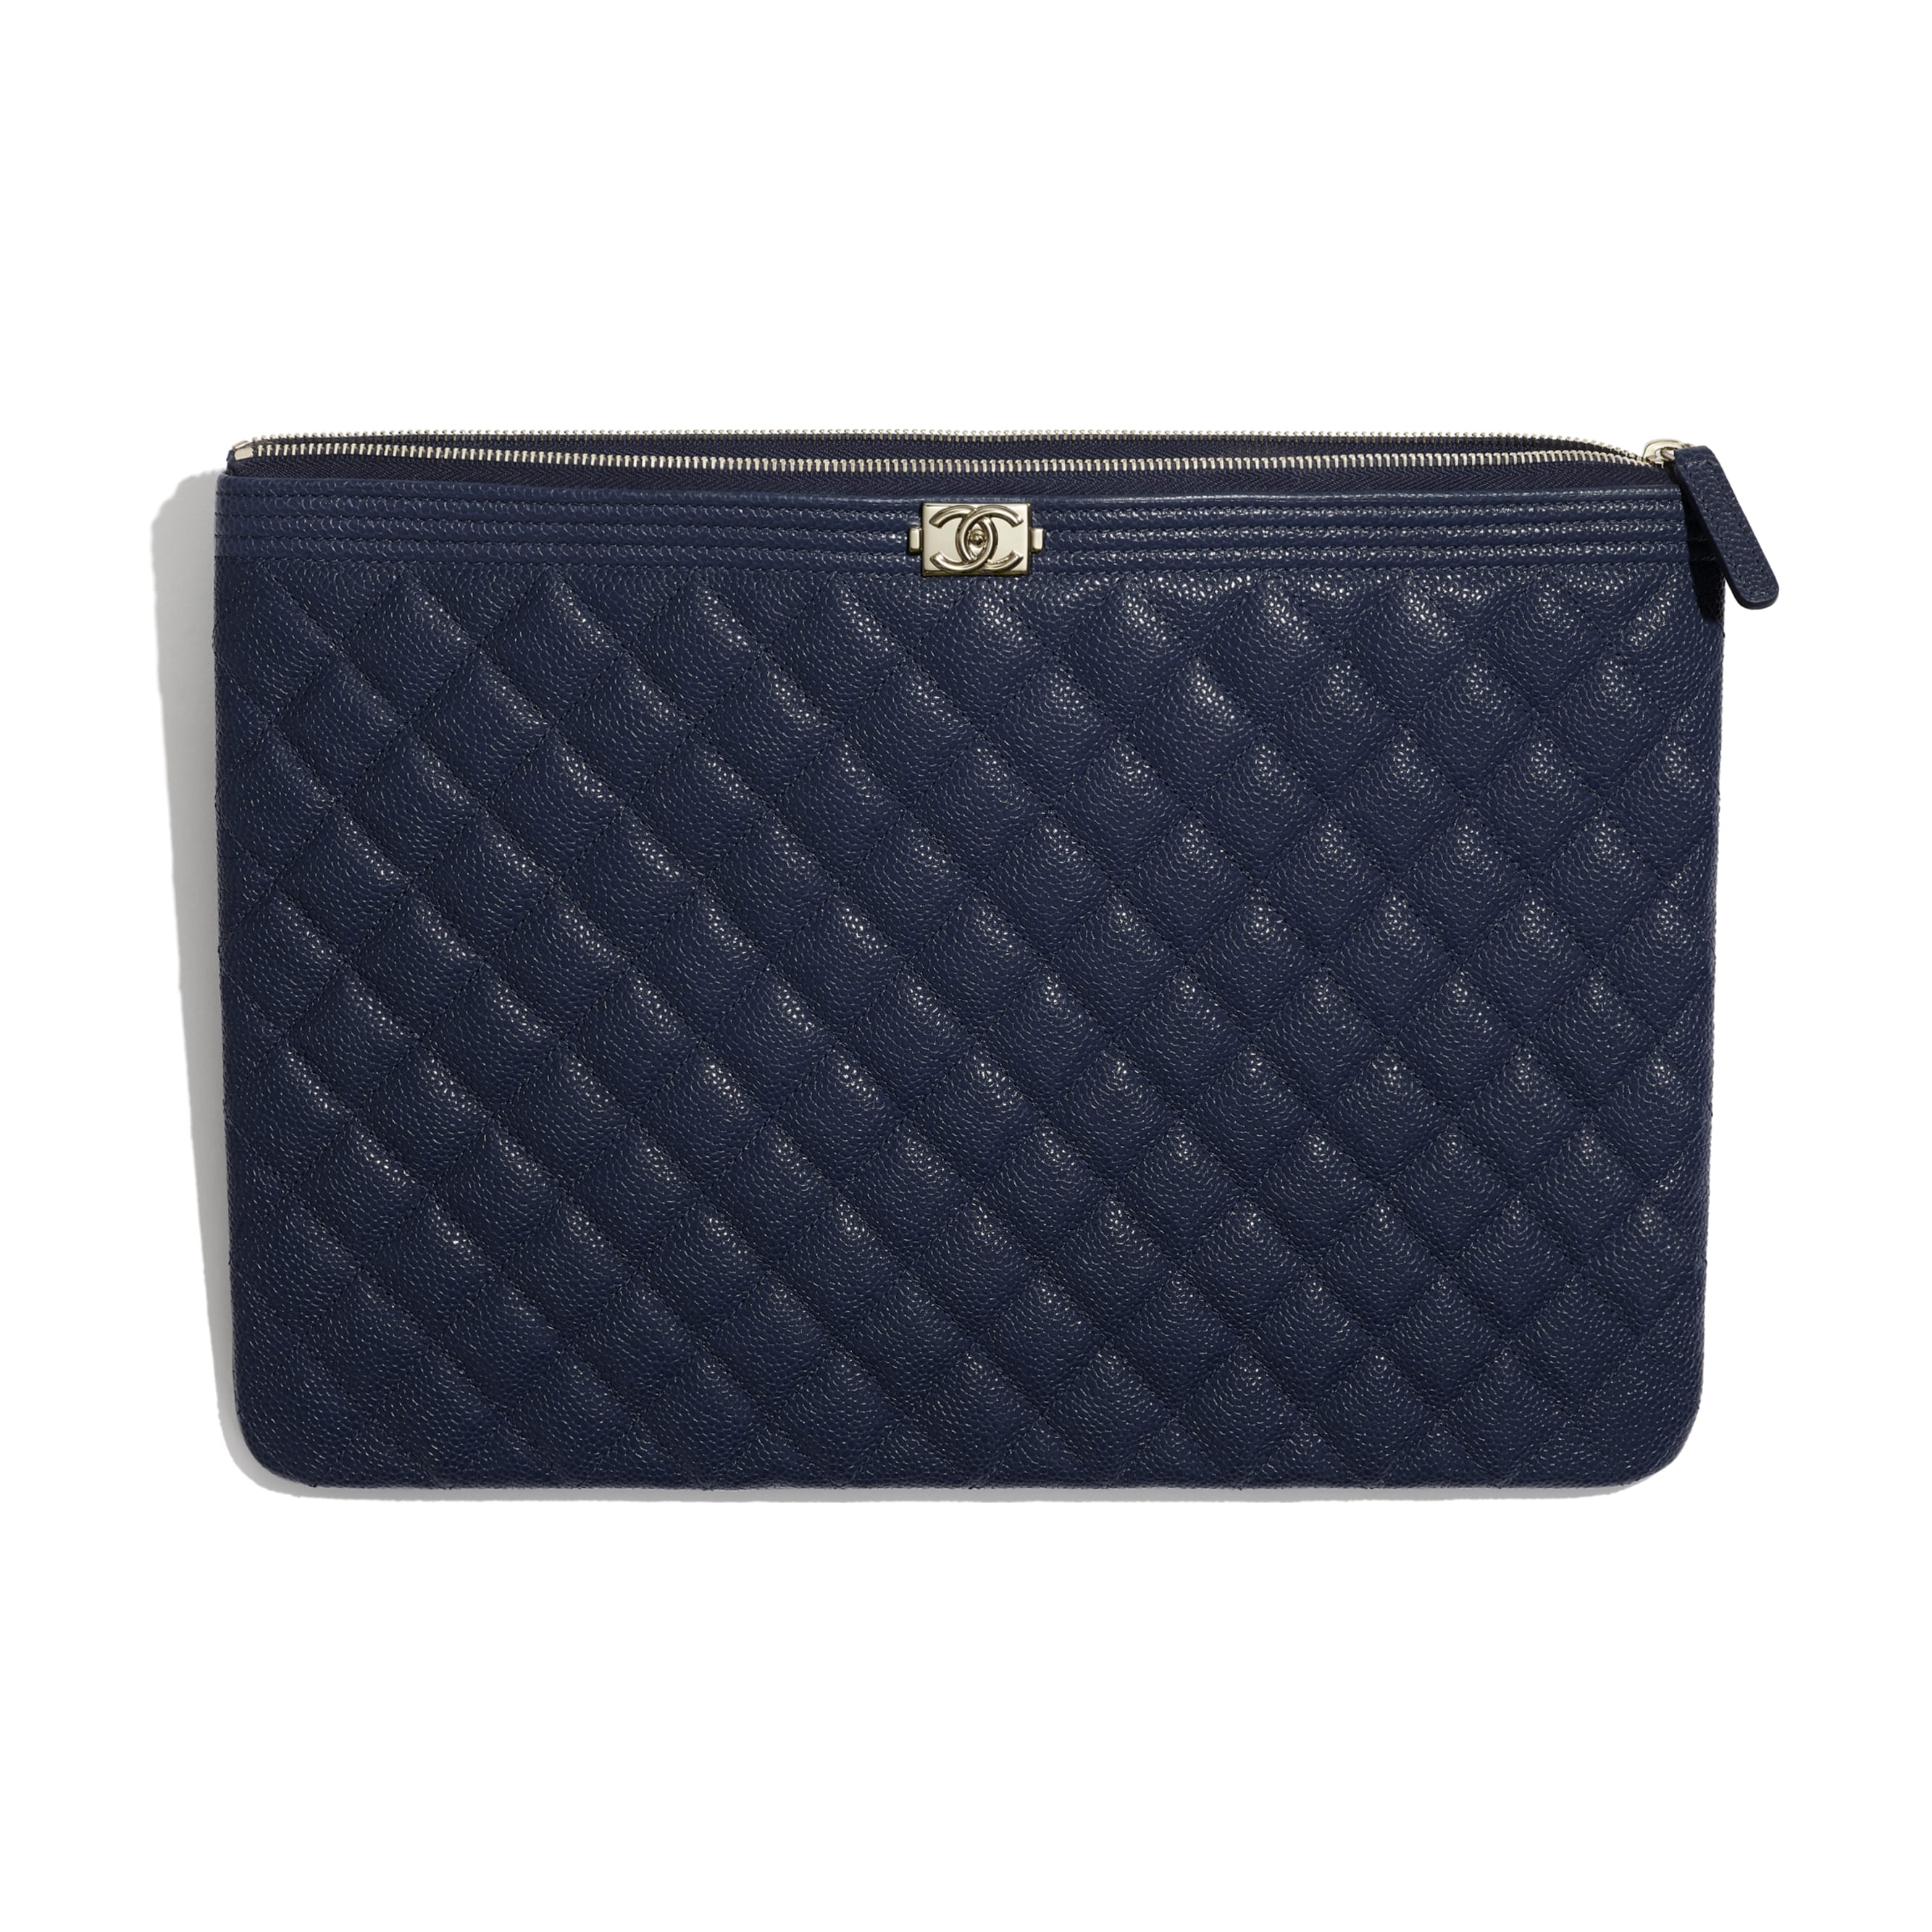 BOY CHANEL Large Pouch - Navy Blue - Grained Shiny Calfskin & Gold-Tone Metal - CHANEL - Other view - see standard sized version